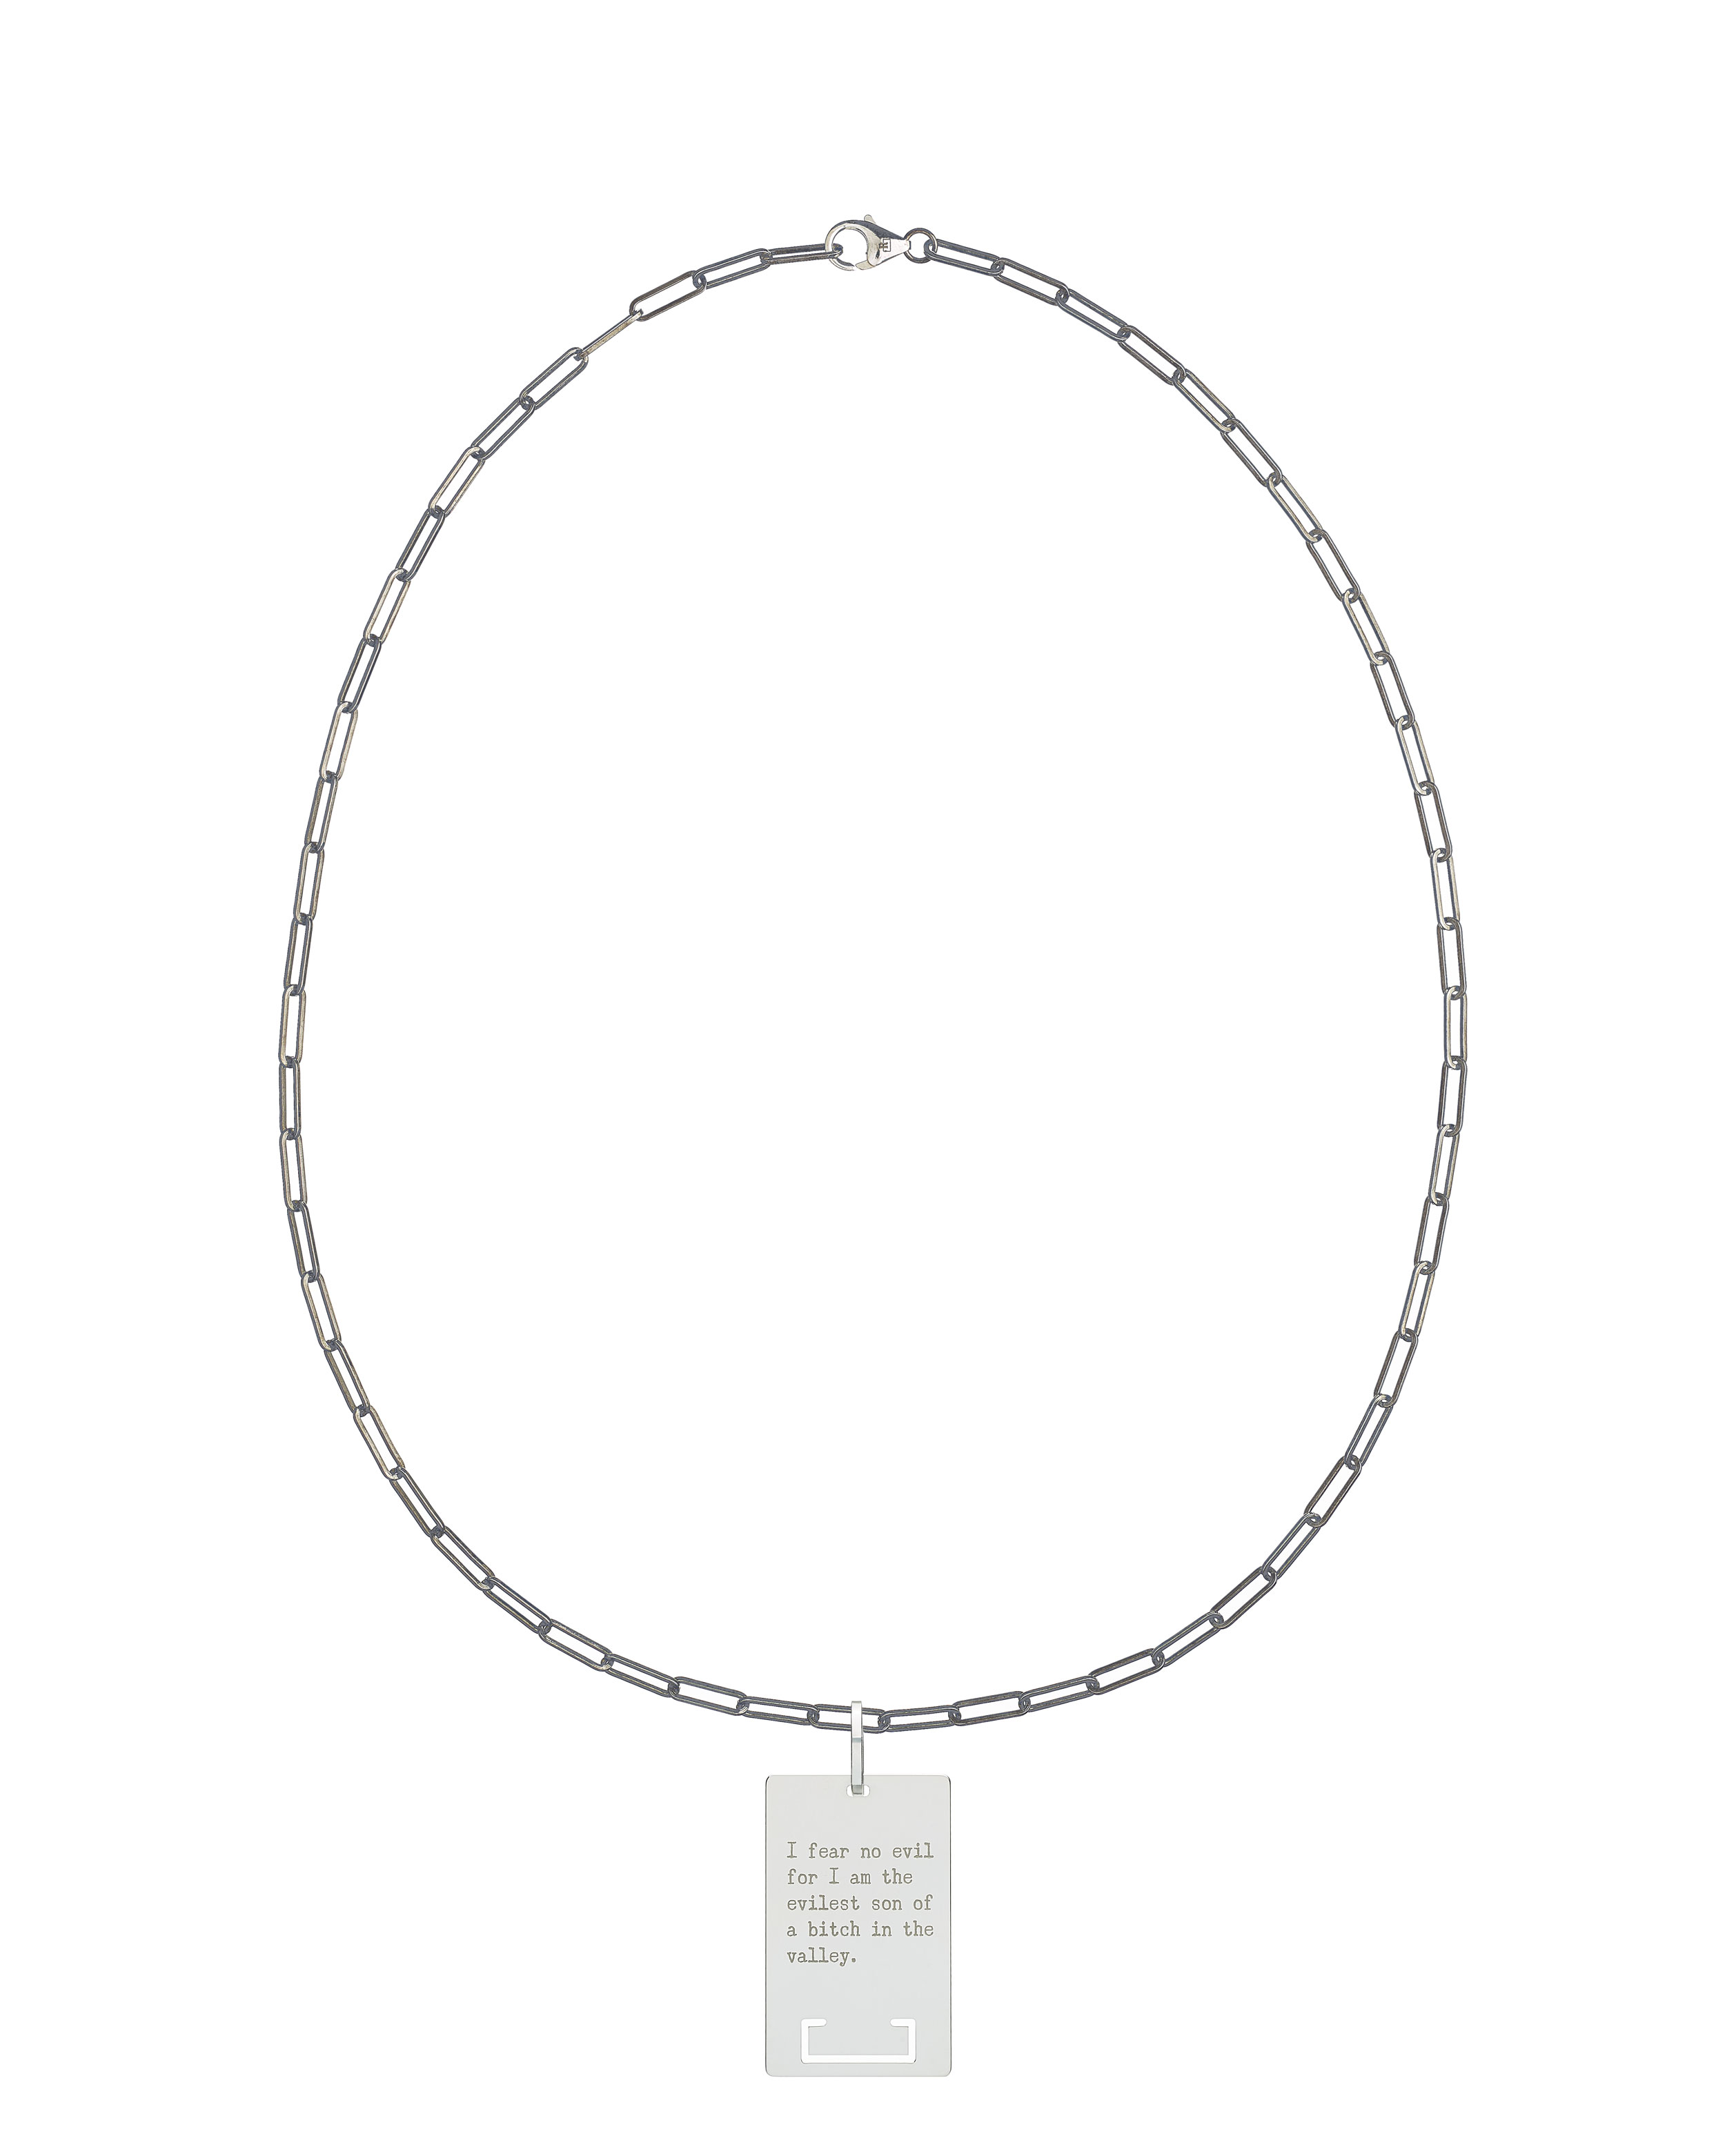 solid 925 Sterling silver chain luxury necklace from Regalia Logo collection with massive military 925 solid Sterling silver pendant laser engraved with Regalia message